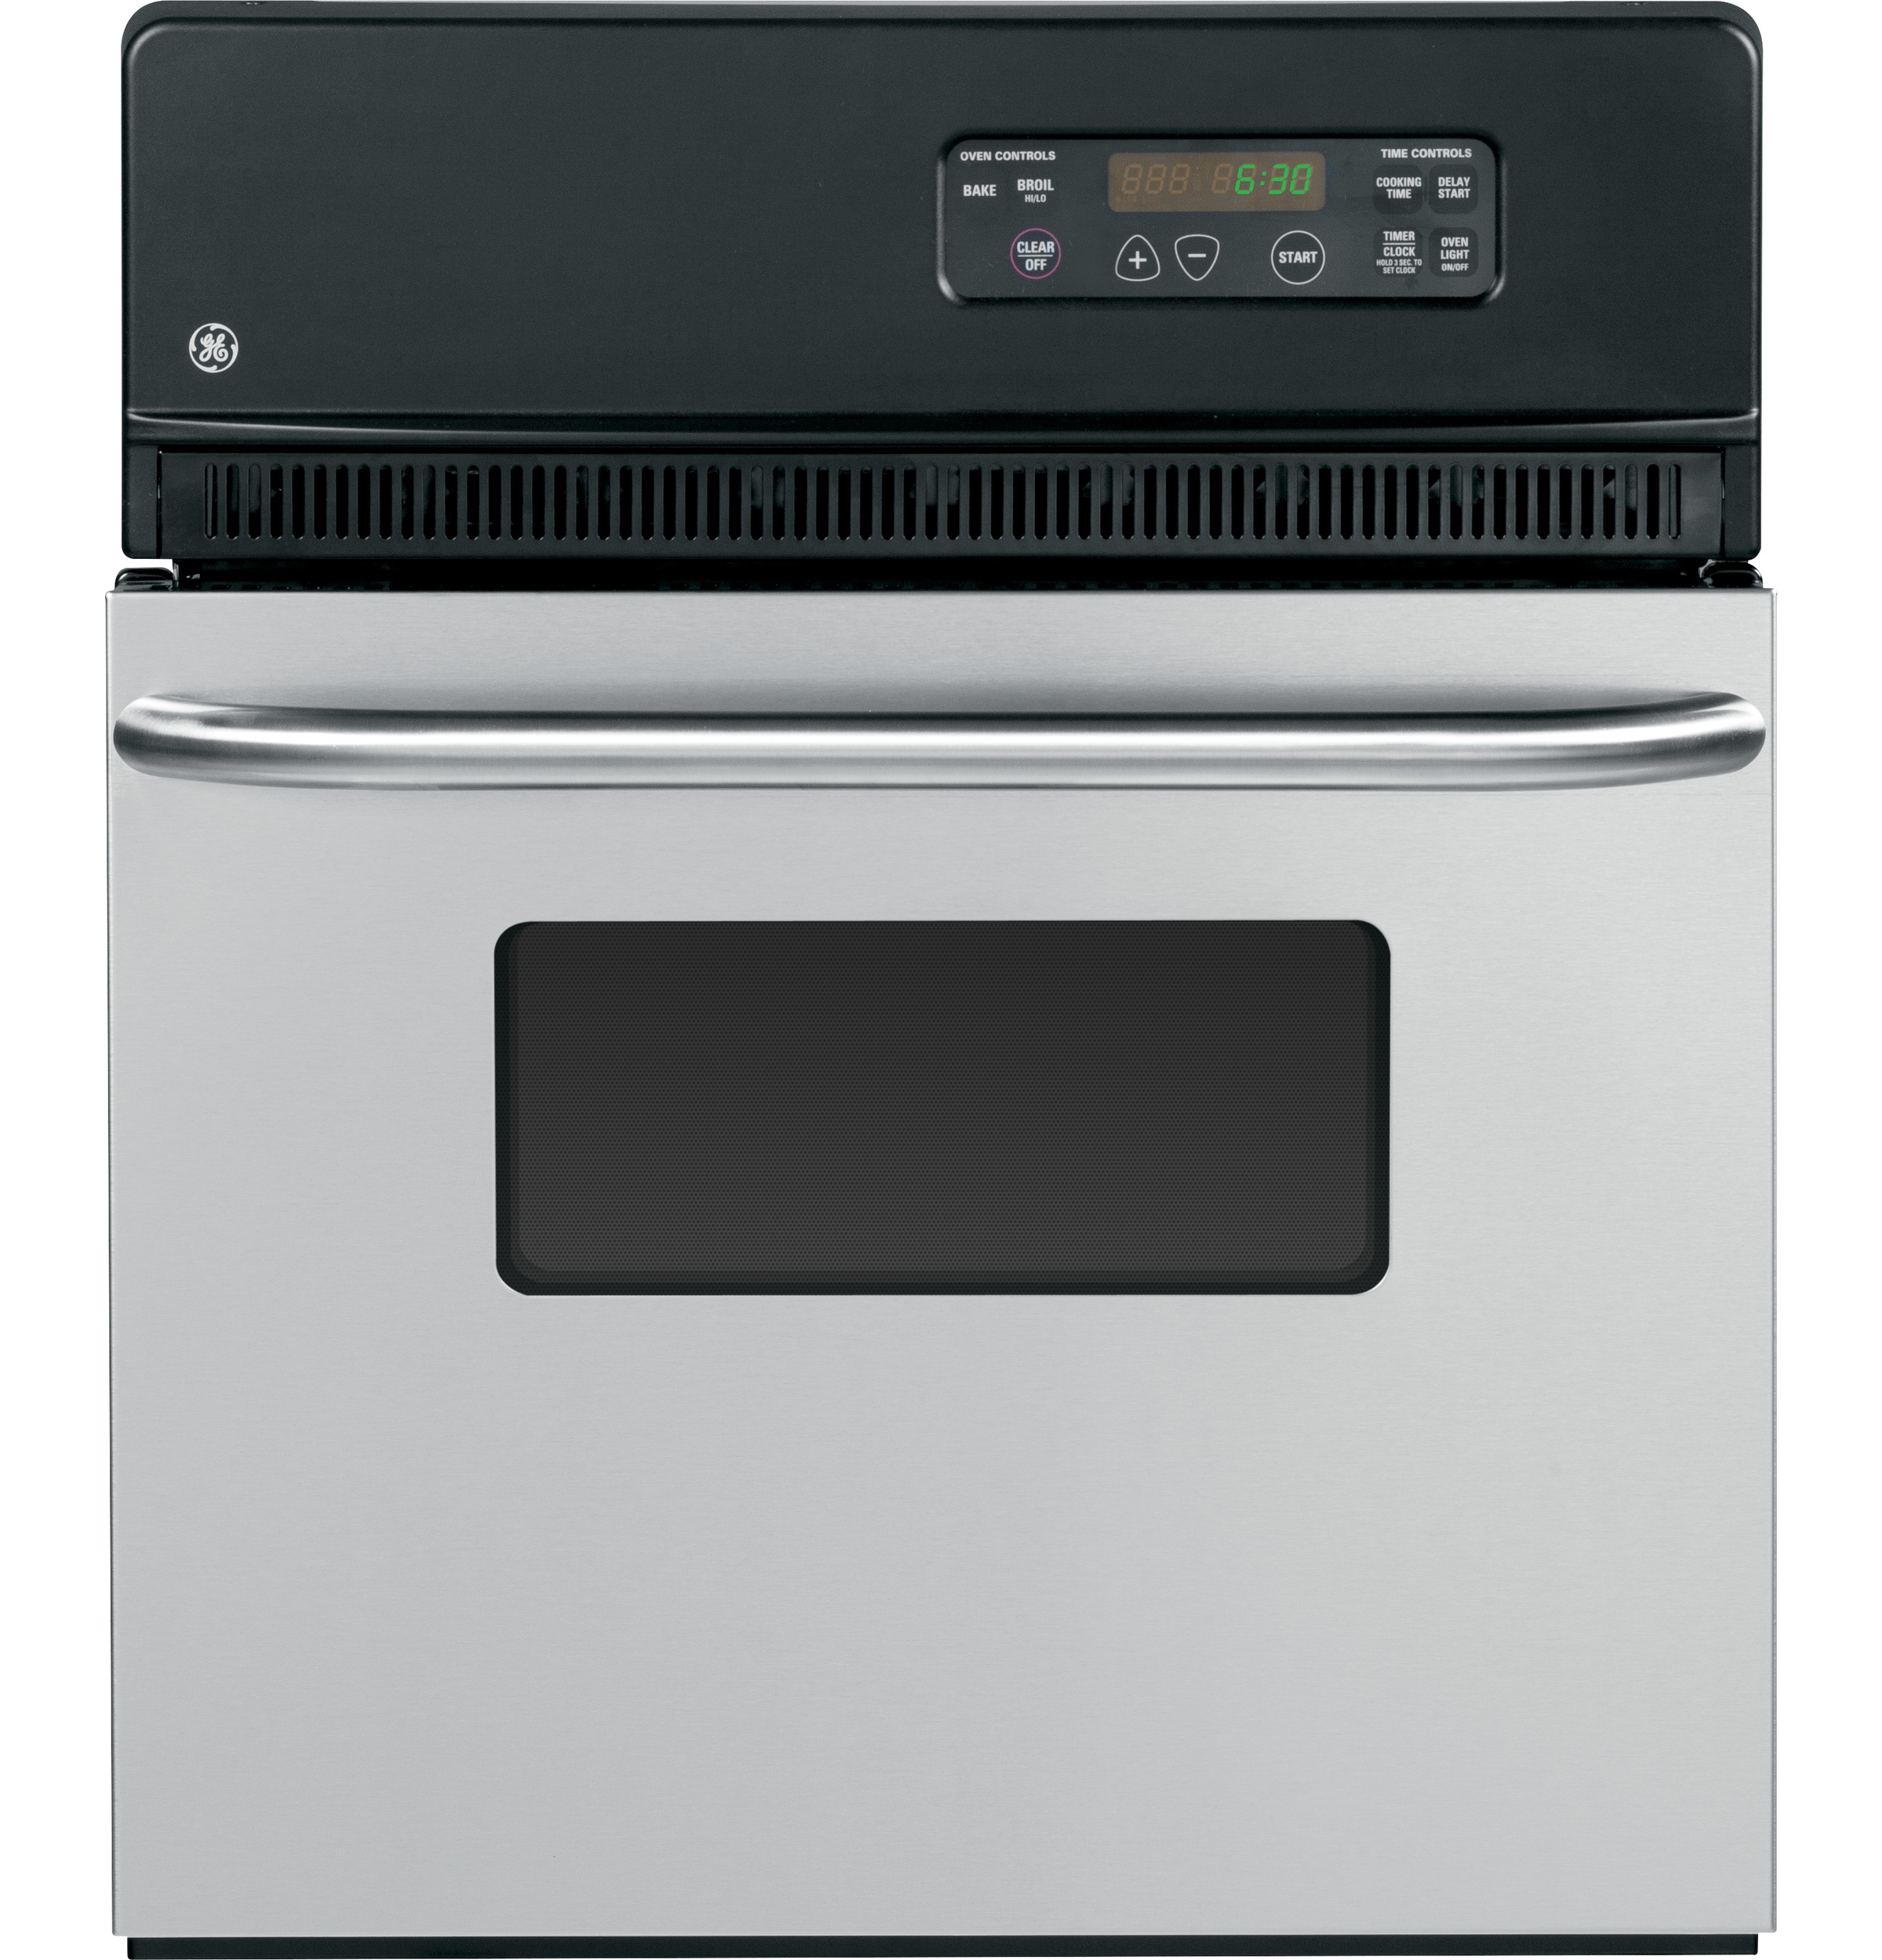 Ge 24 Electric Single Standard Clean Wall Oven Jrs06skss Vehicle Supply Equipment On Without Hard Wiring Product Image